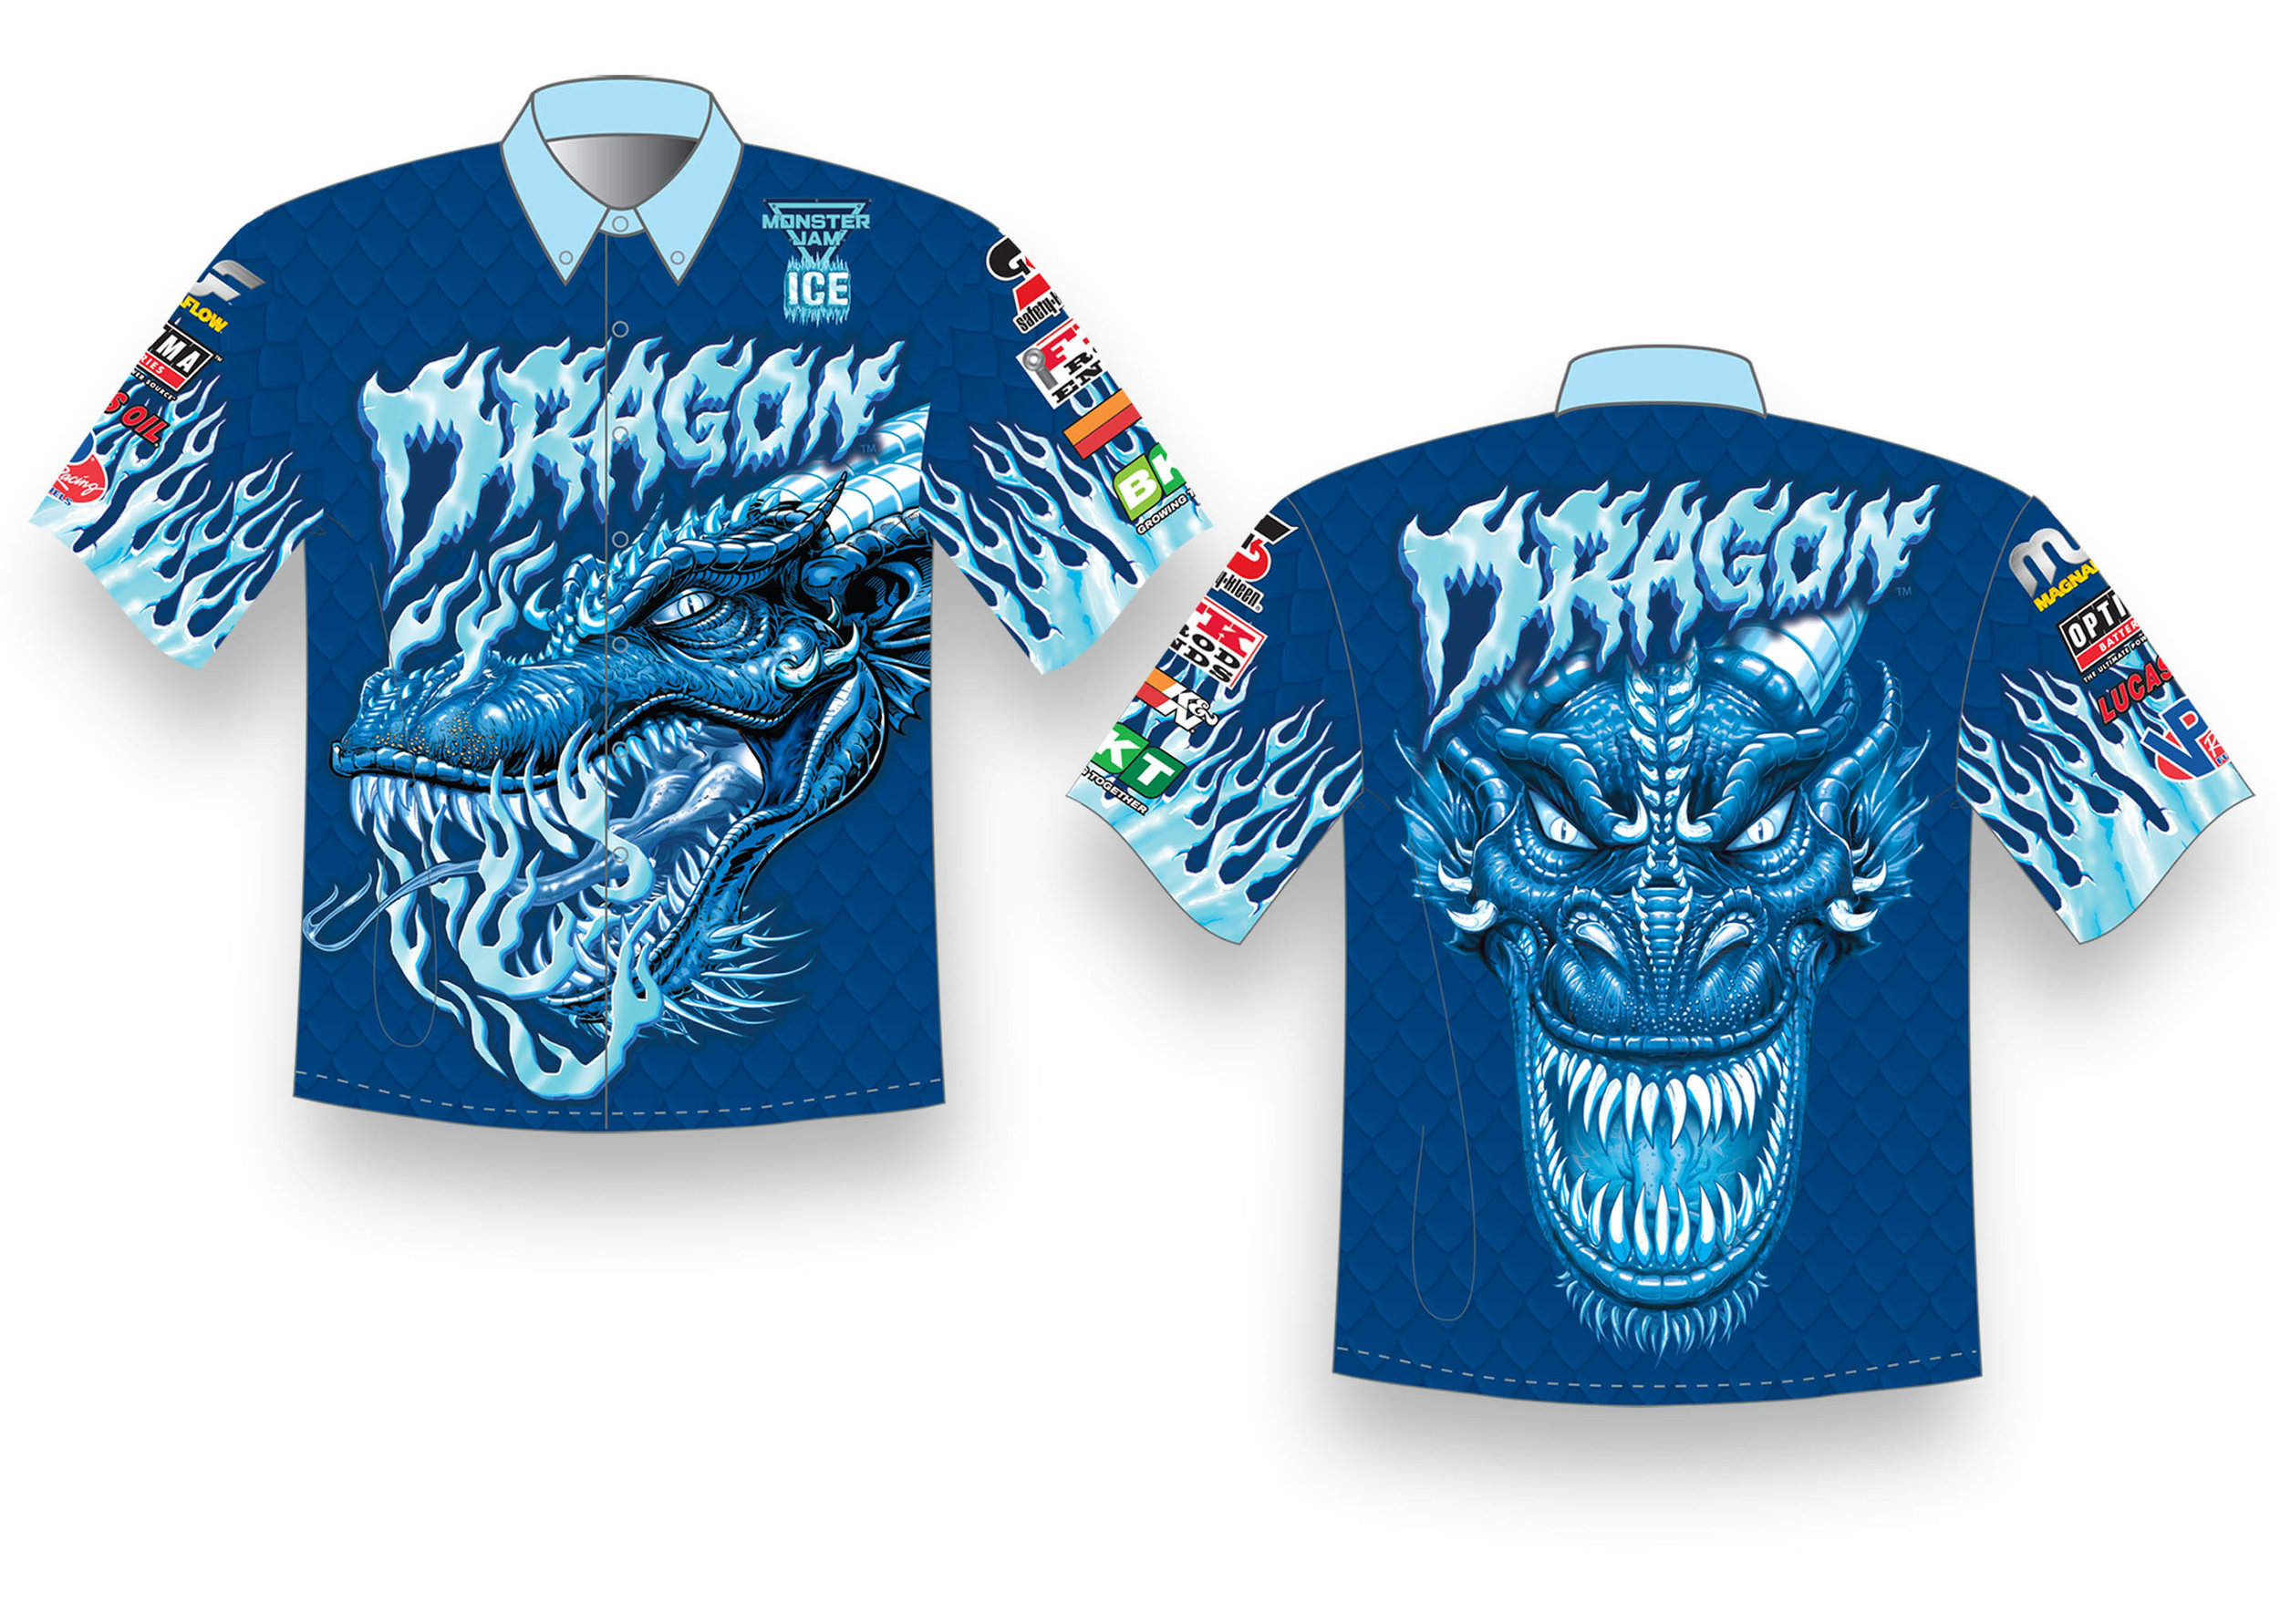 Crewshirt.Ice.Dragon.Horiz.jpg